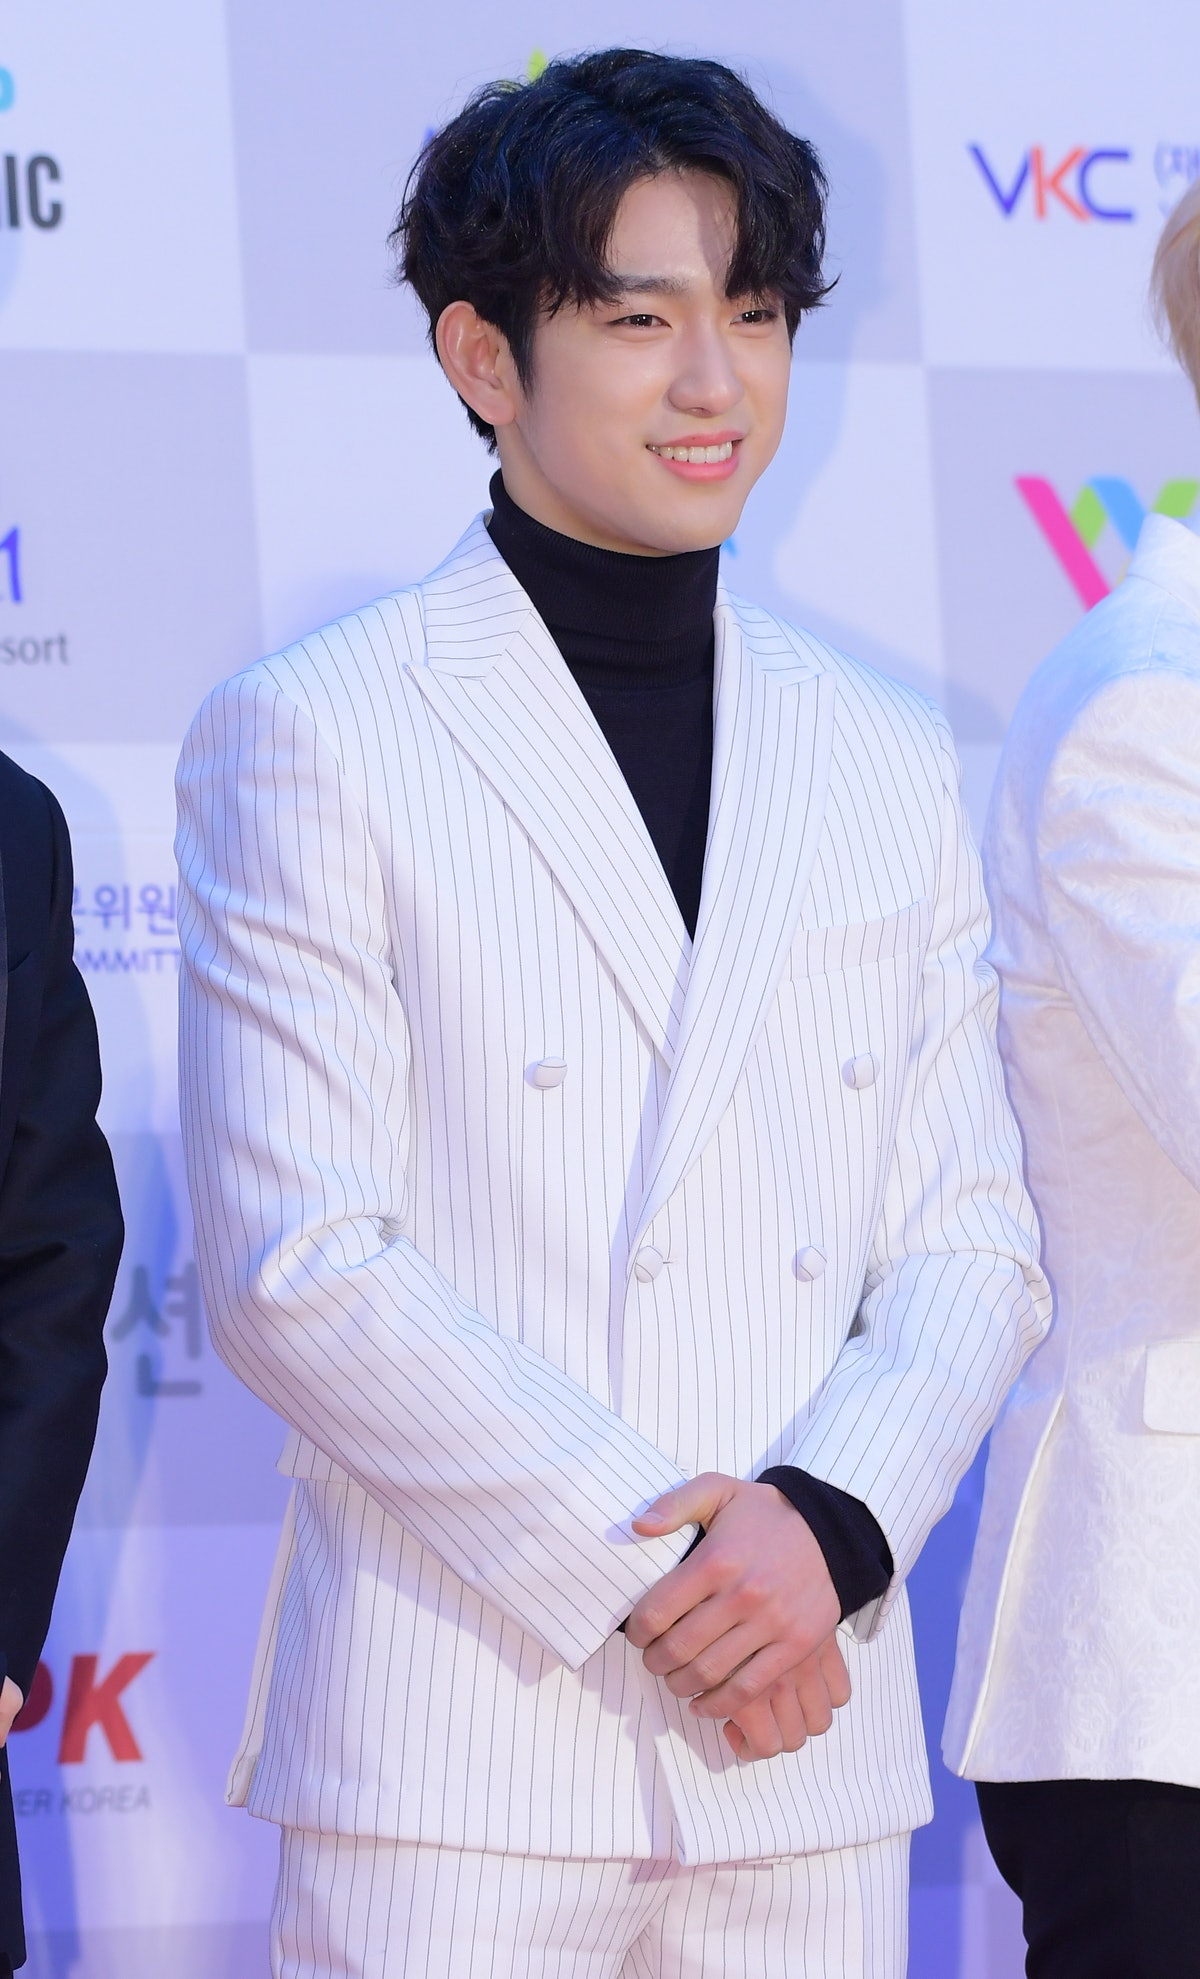 SEOUL, SOUTH KOREA - JANUARY 19: Jinyoung of GOT7 attends 26th High1 Seoul Music Awards at Jamsil Arena on January 19, 2017 in Seoul, South Korea. (Photo by The Chosunilbo JNS/Imazins via Getty Images)